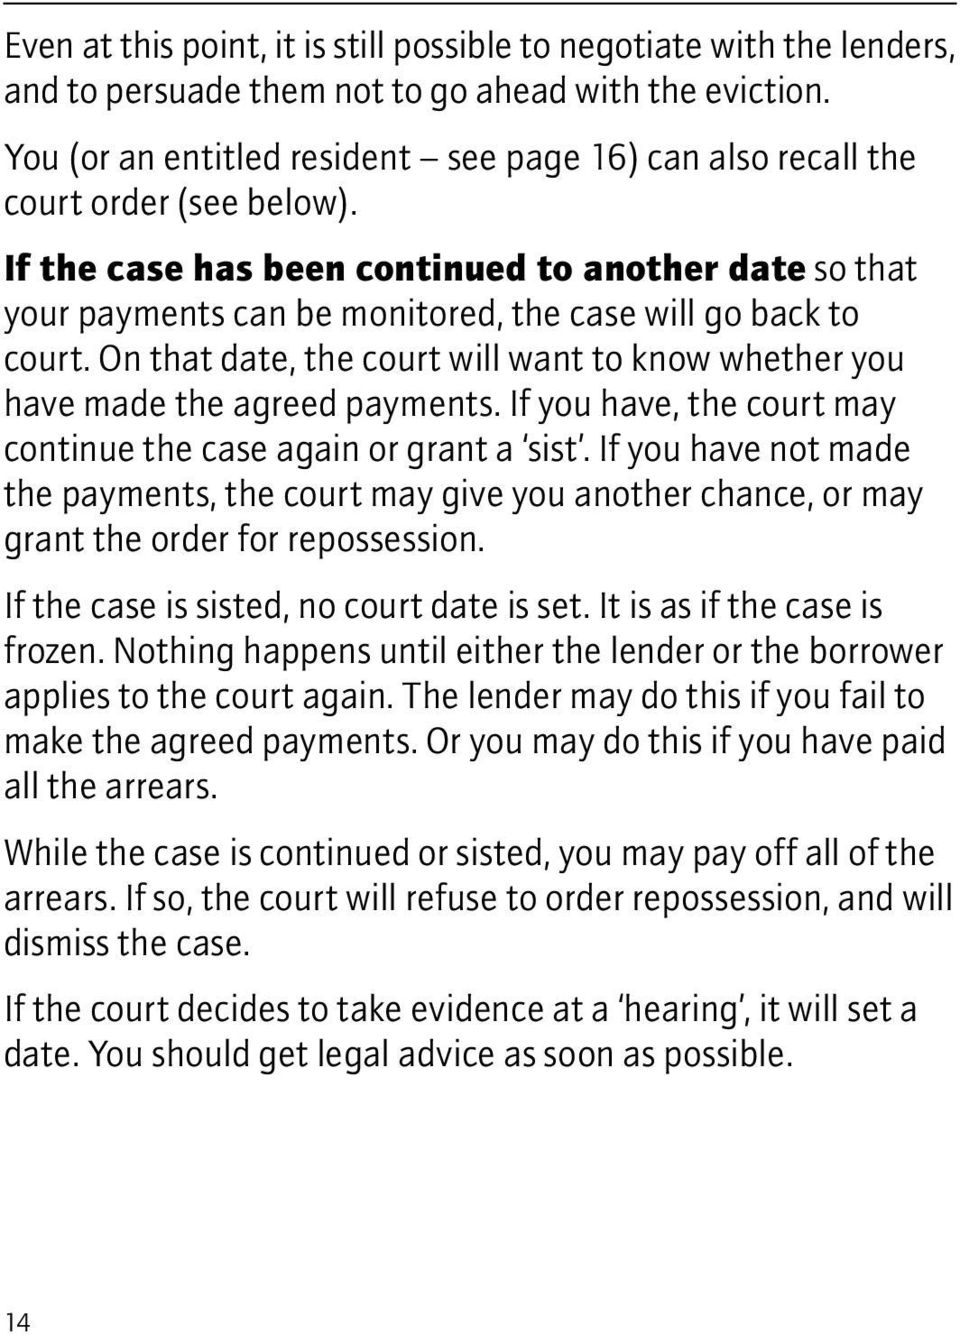 If the case has been continued to another date so that your payments can be monitored, the case will go back to court.